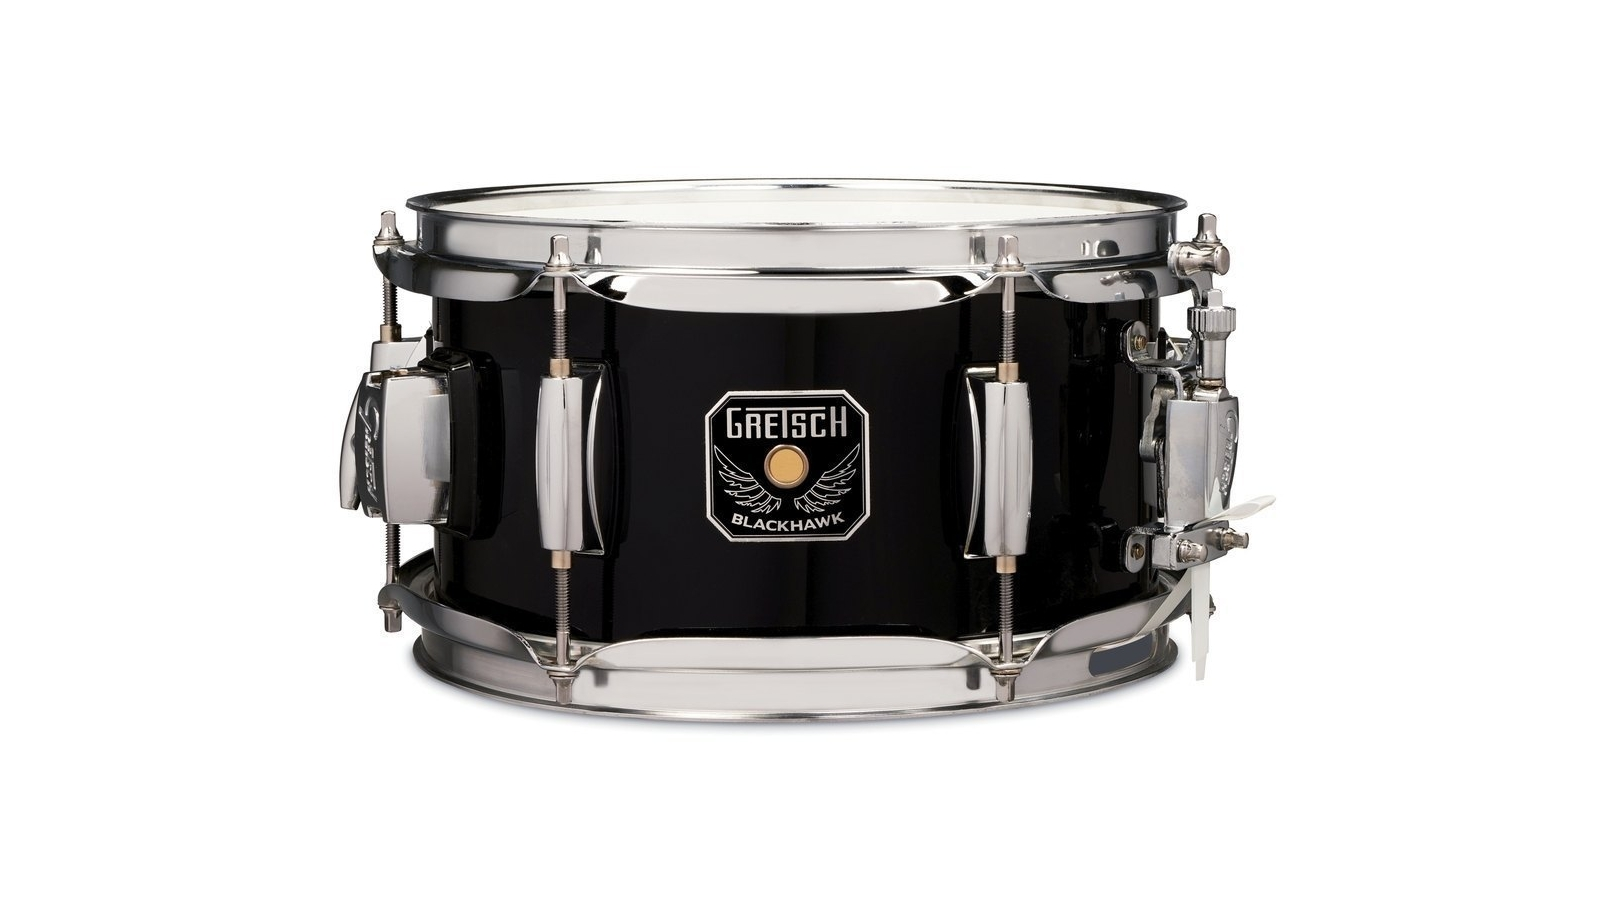 Gretsch Snare Drum 10x5,5 Blackhawk Mighty Mini